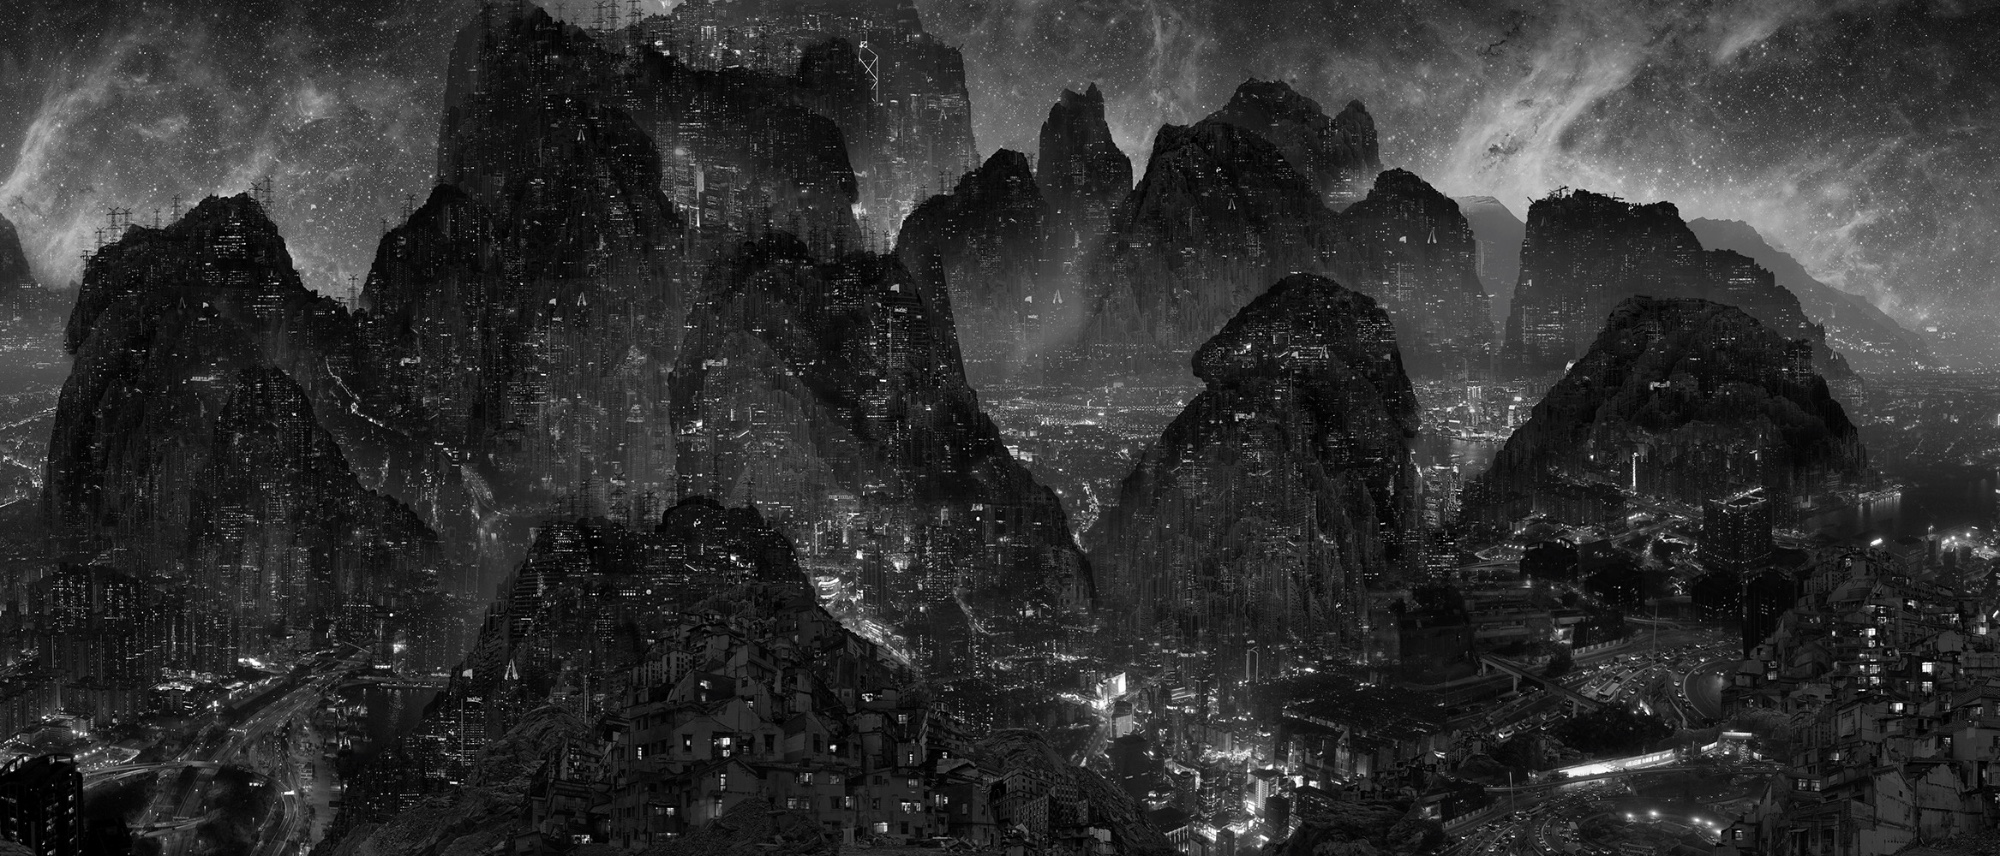 Yang Yongliang, Journey To The Dark, 2017 ©  Yang Yongliang / Artwork exhibited by PARIS-BEIJING